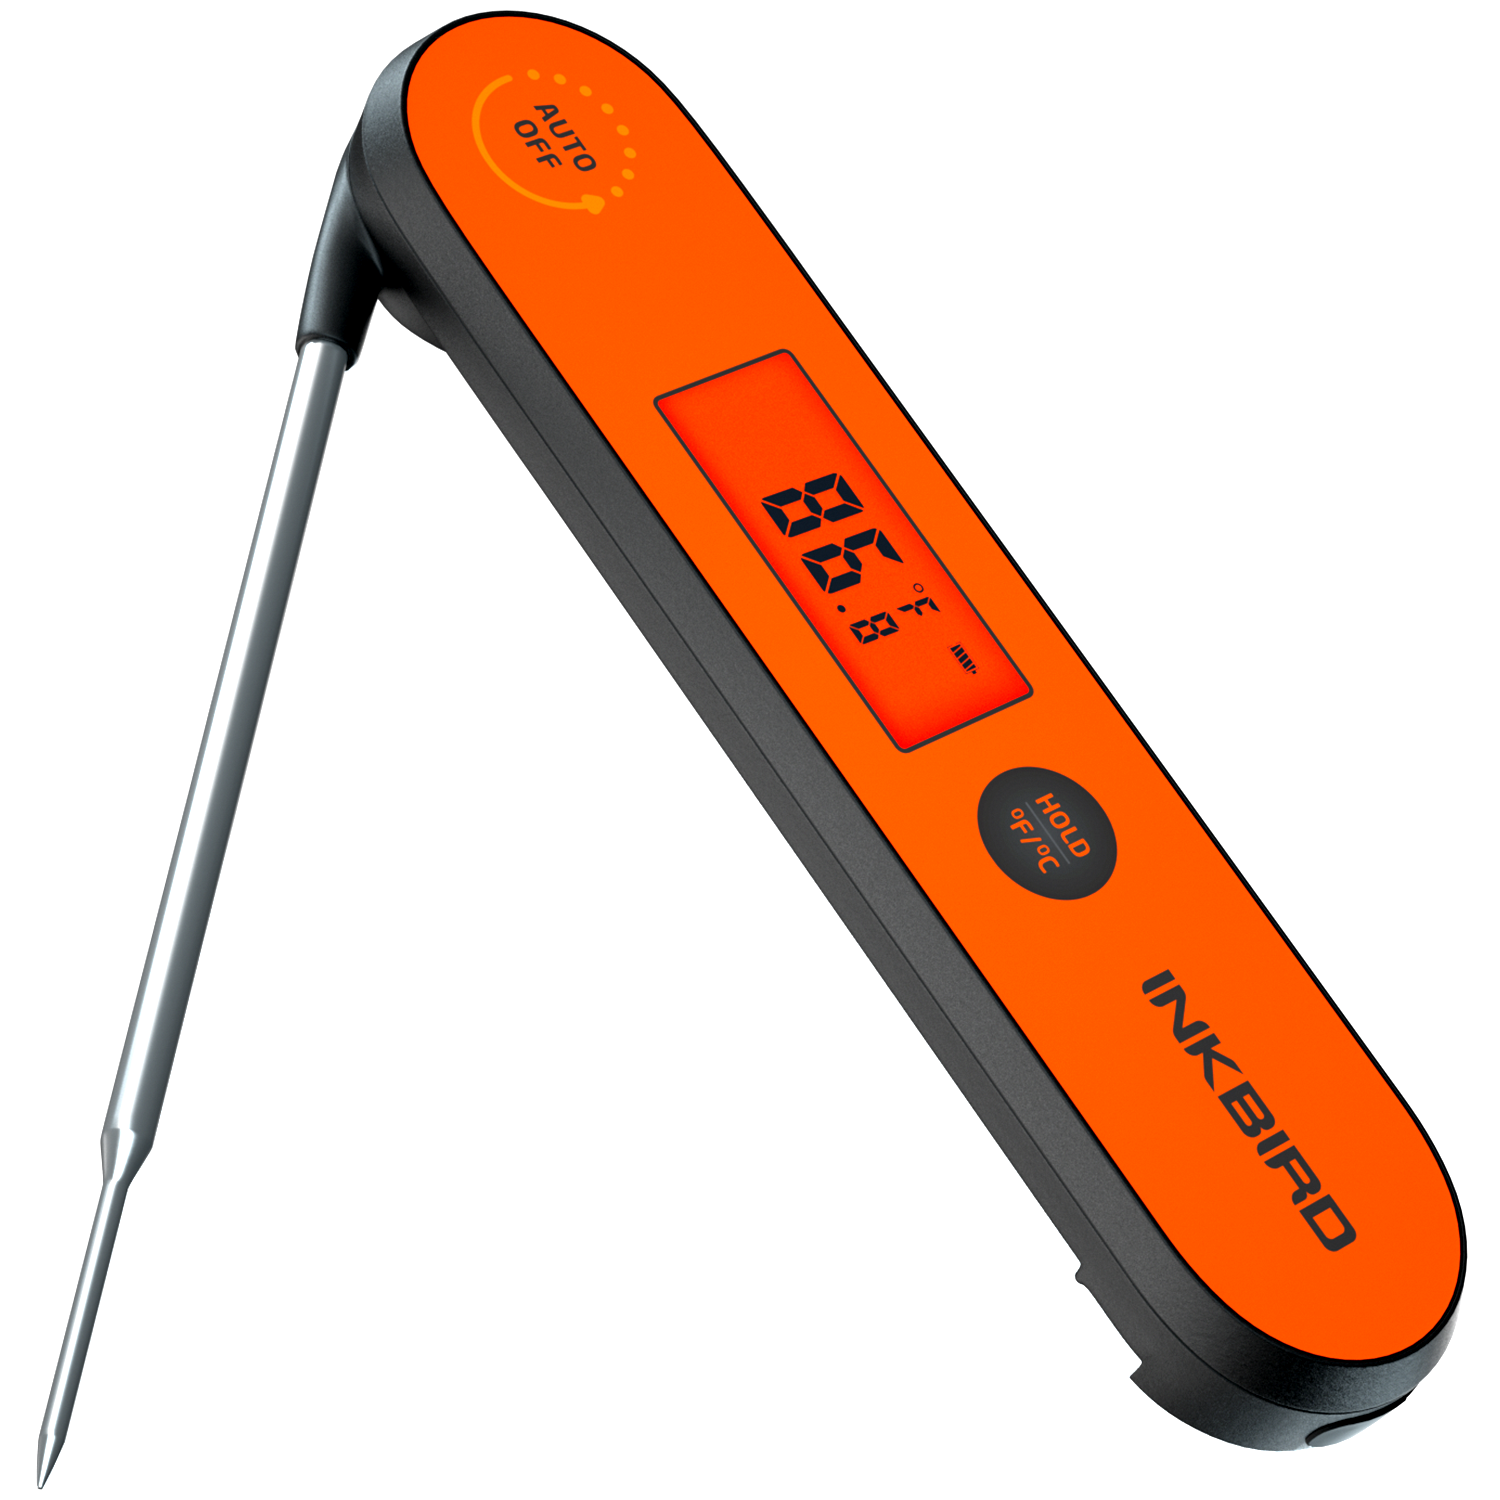 Wireless Inkbird IBT 2X 4XS 6XS Food Thermometer with Bluetooth and Free Apps for Smartphones and iPhone useful for Cooking Grilling BBQ and Boiling 4